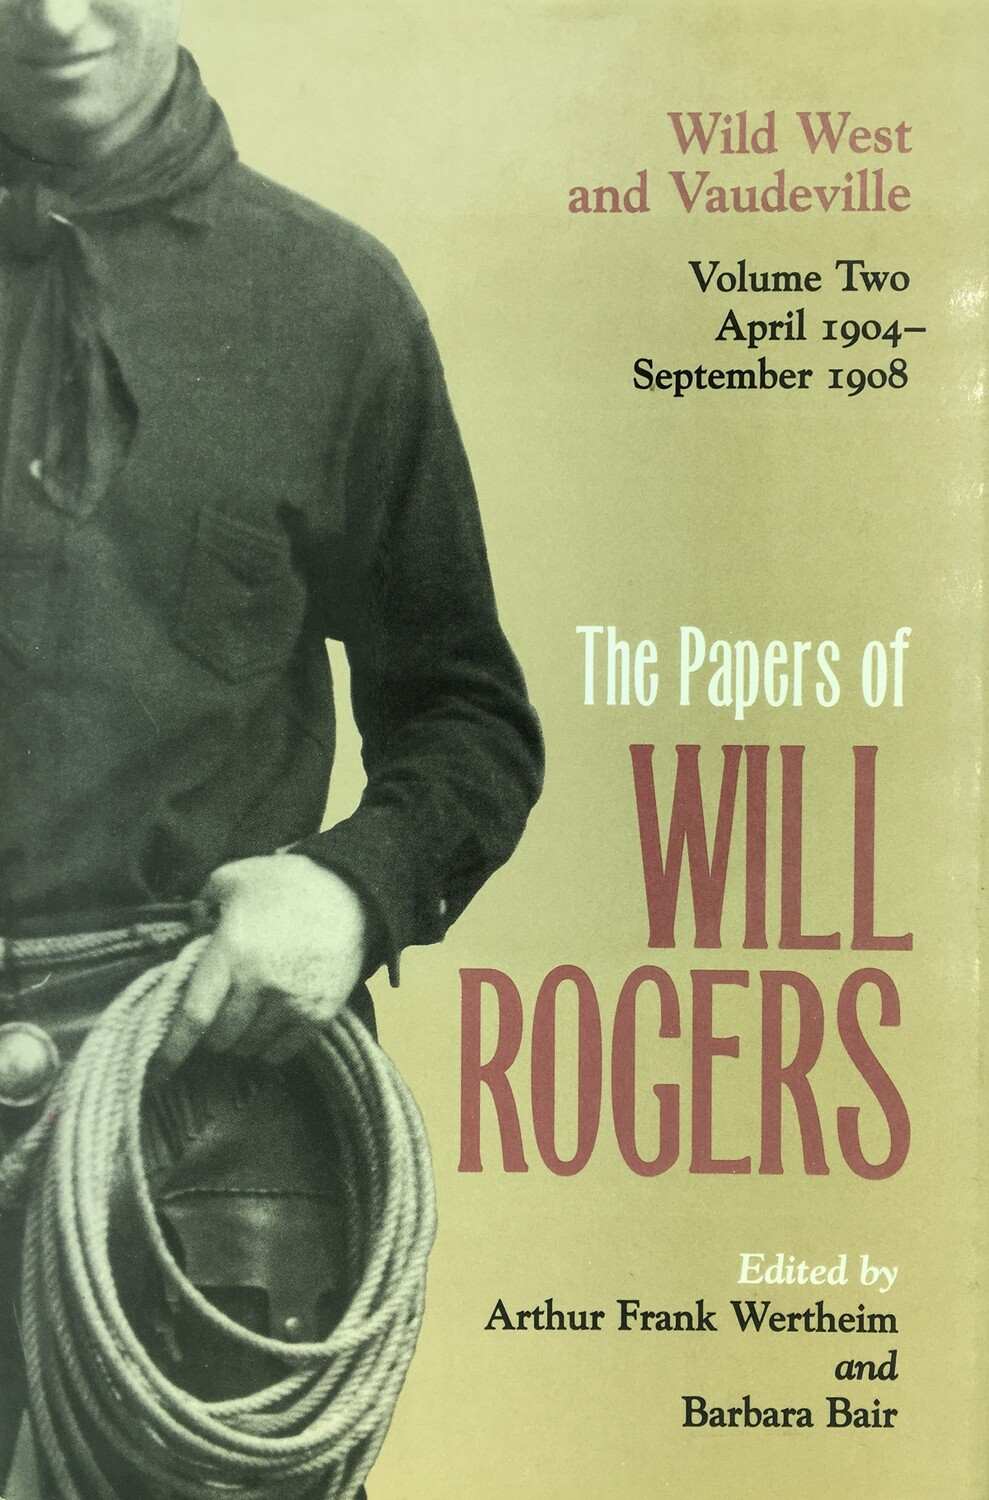 The Papers of Will Rogers Volume 2